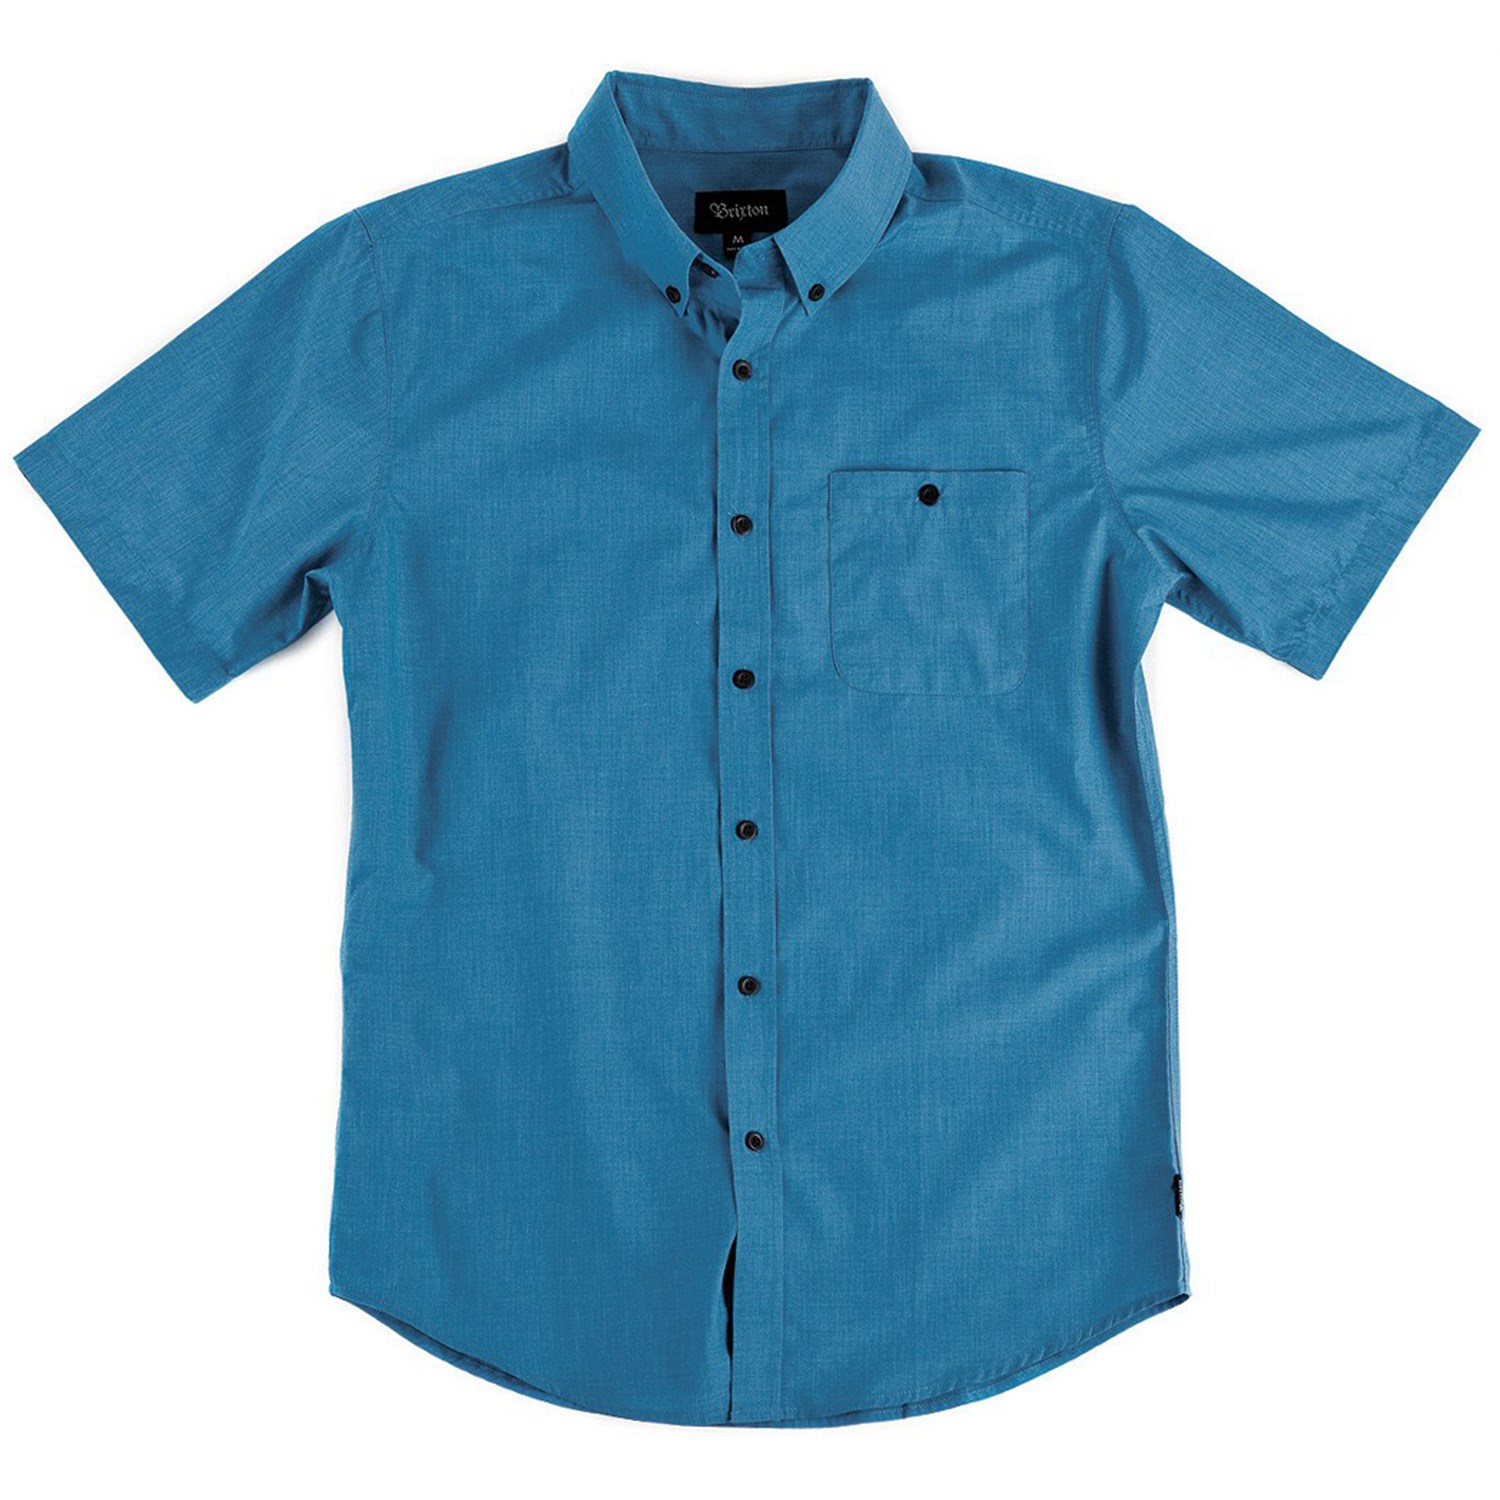 Brixton Central Short Sleeve Button Down Shirt Evo Outlet